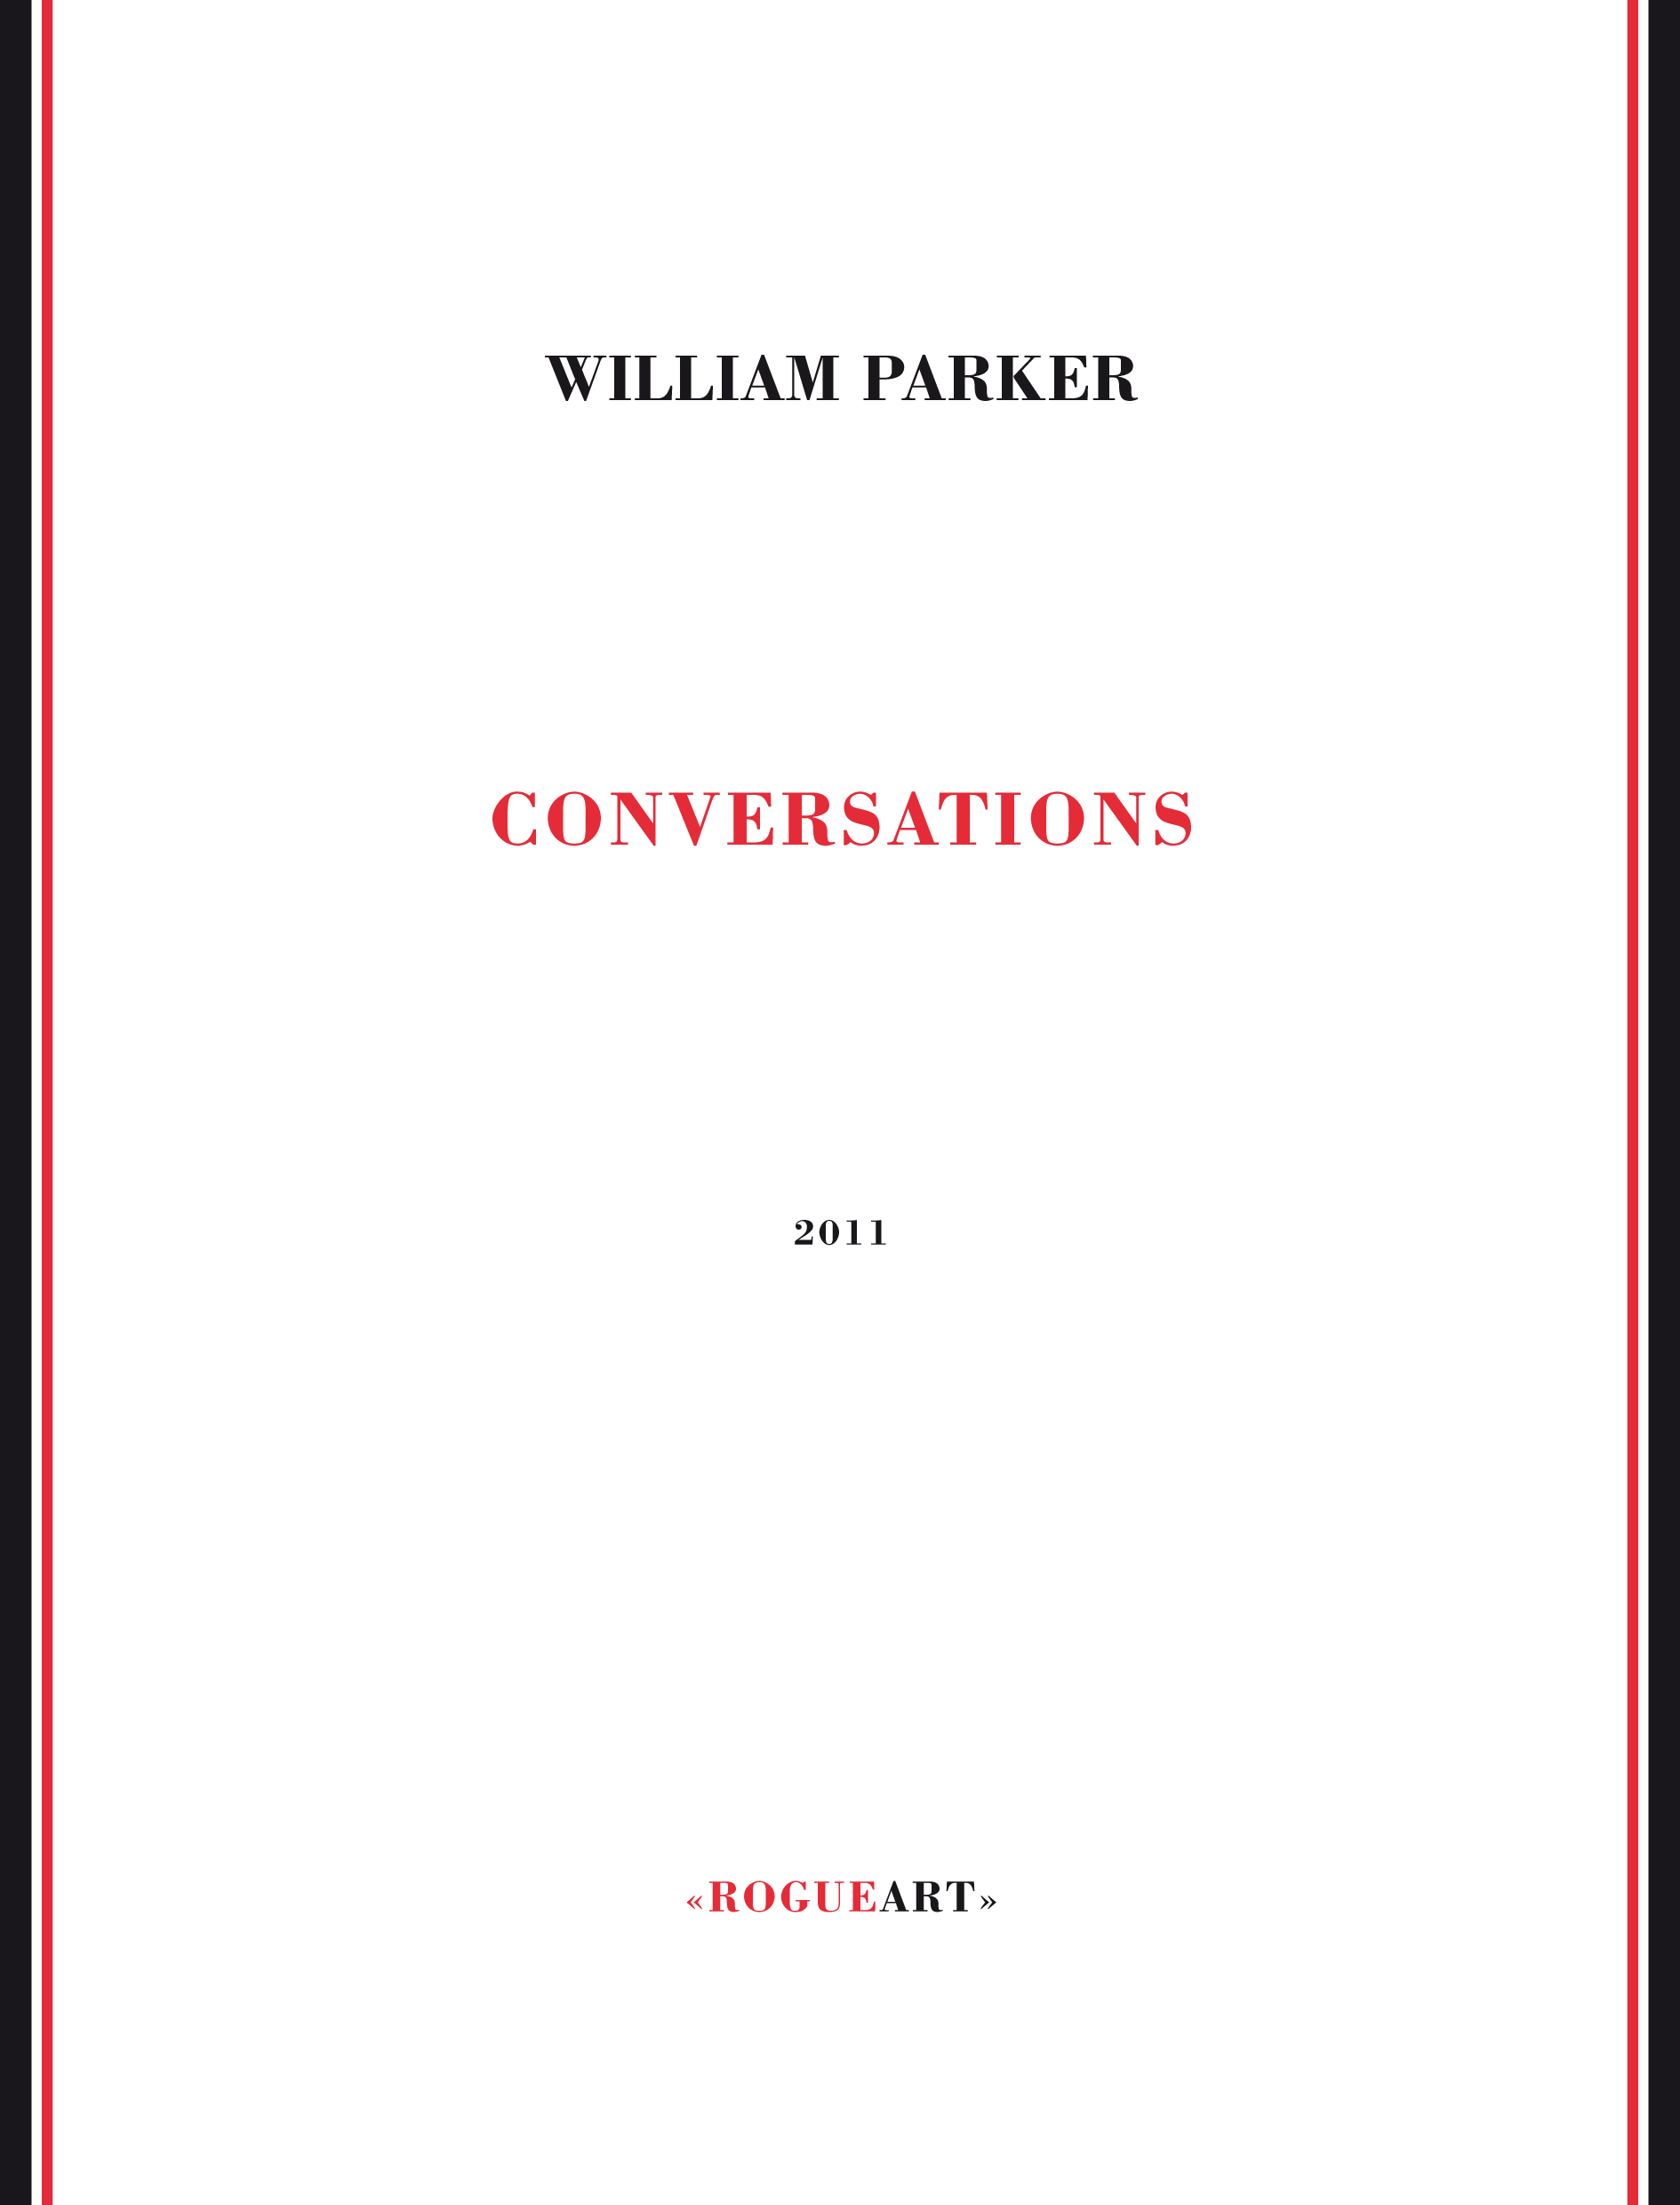 Front cover of the book CONVERSATIONS